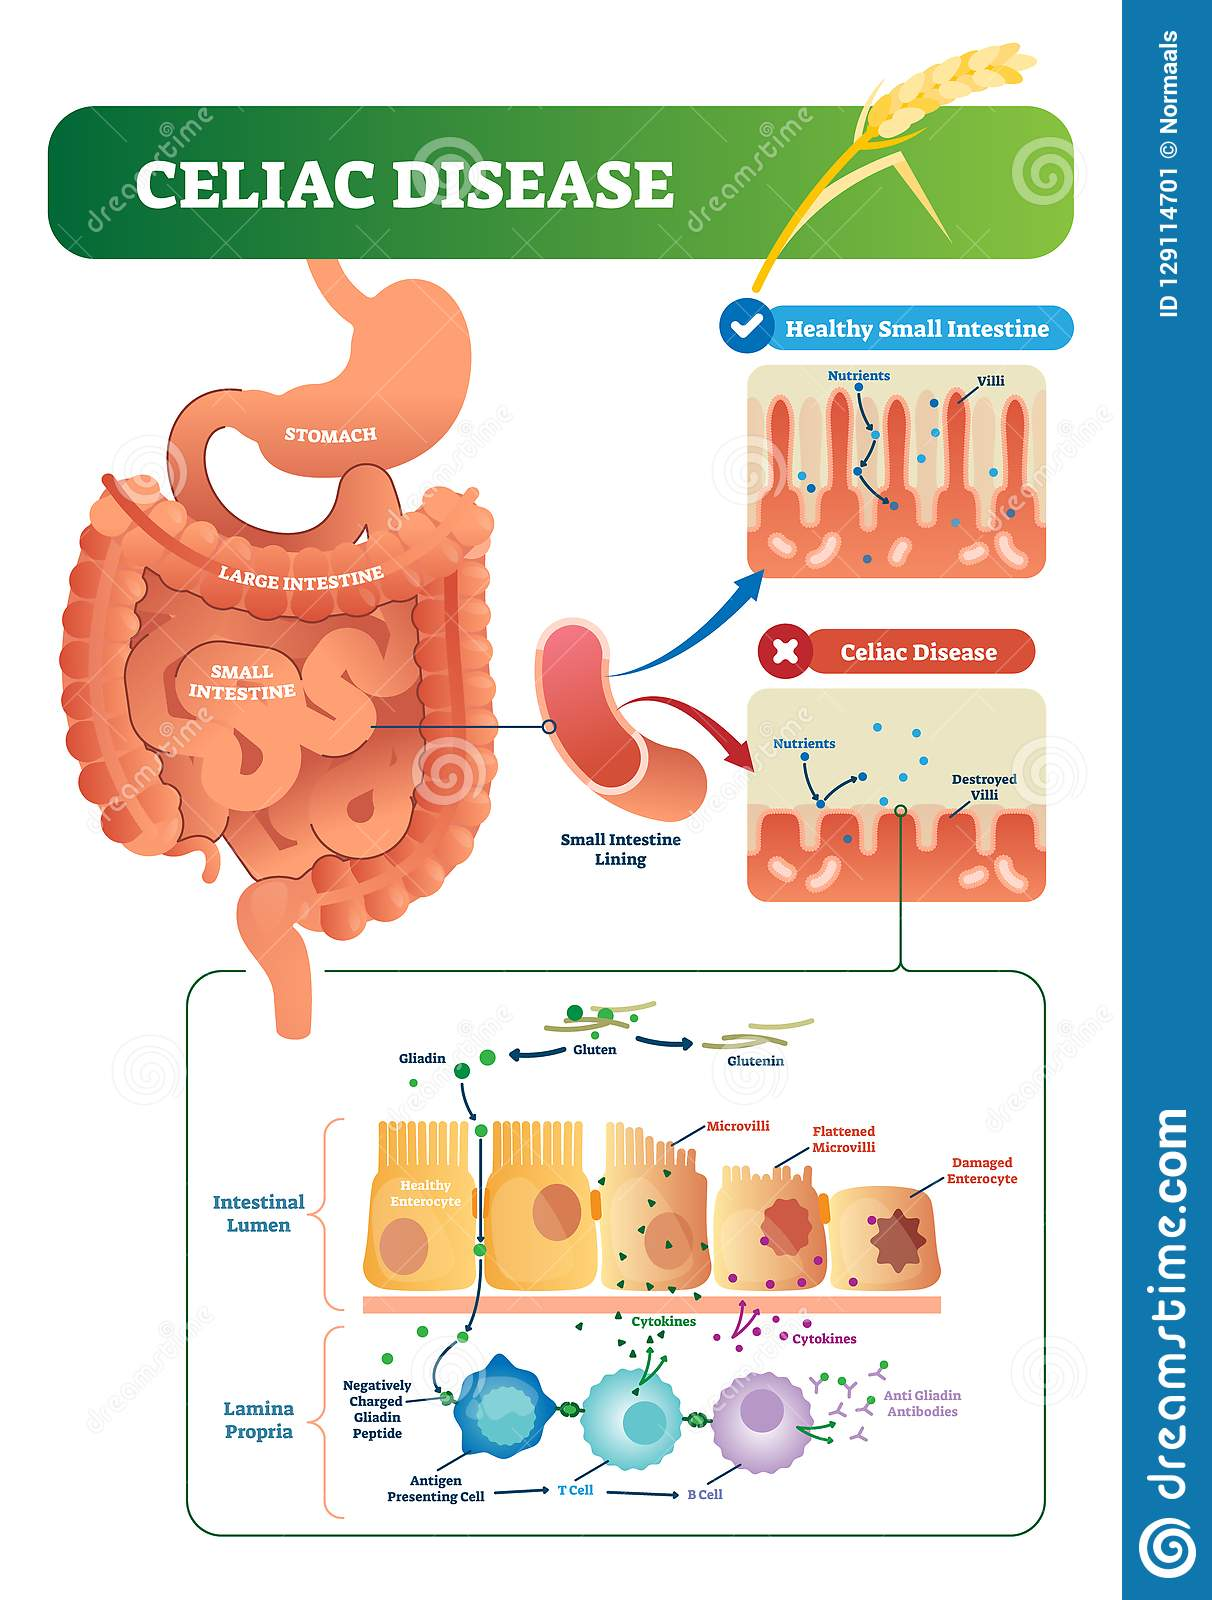 Celiac disease vector illustration. Labeled diagram with its structure